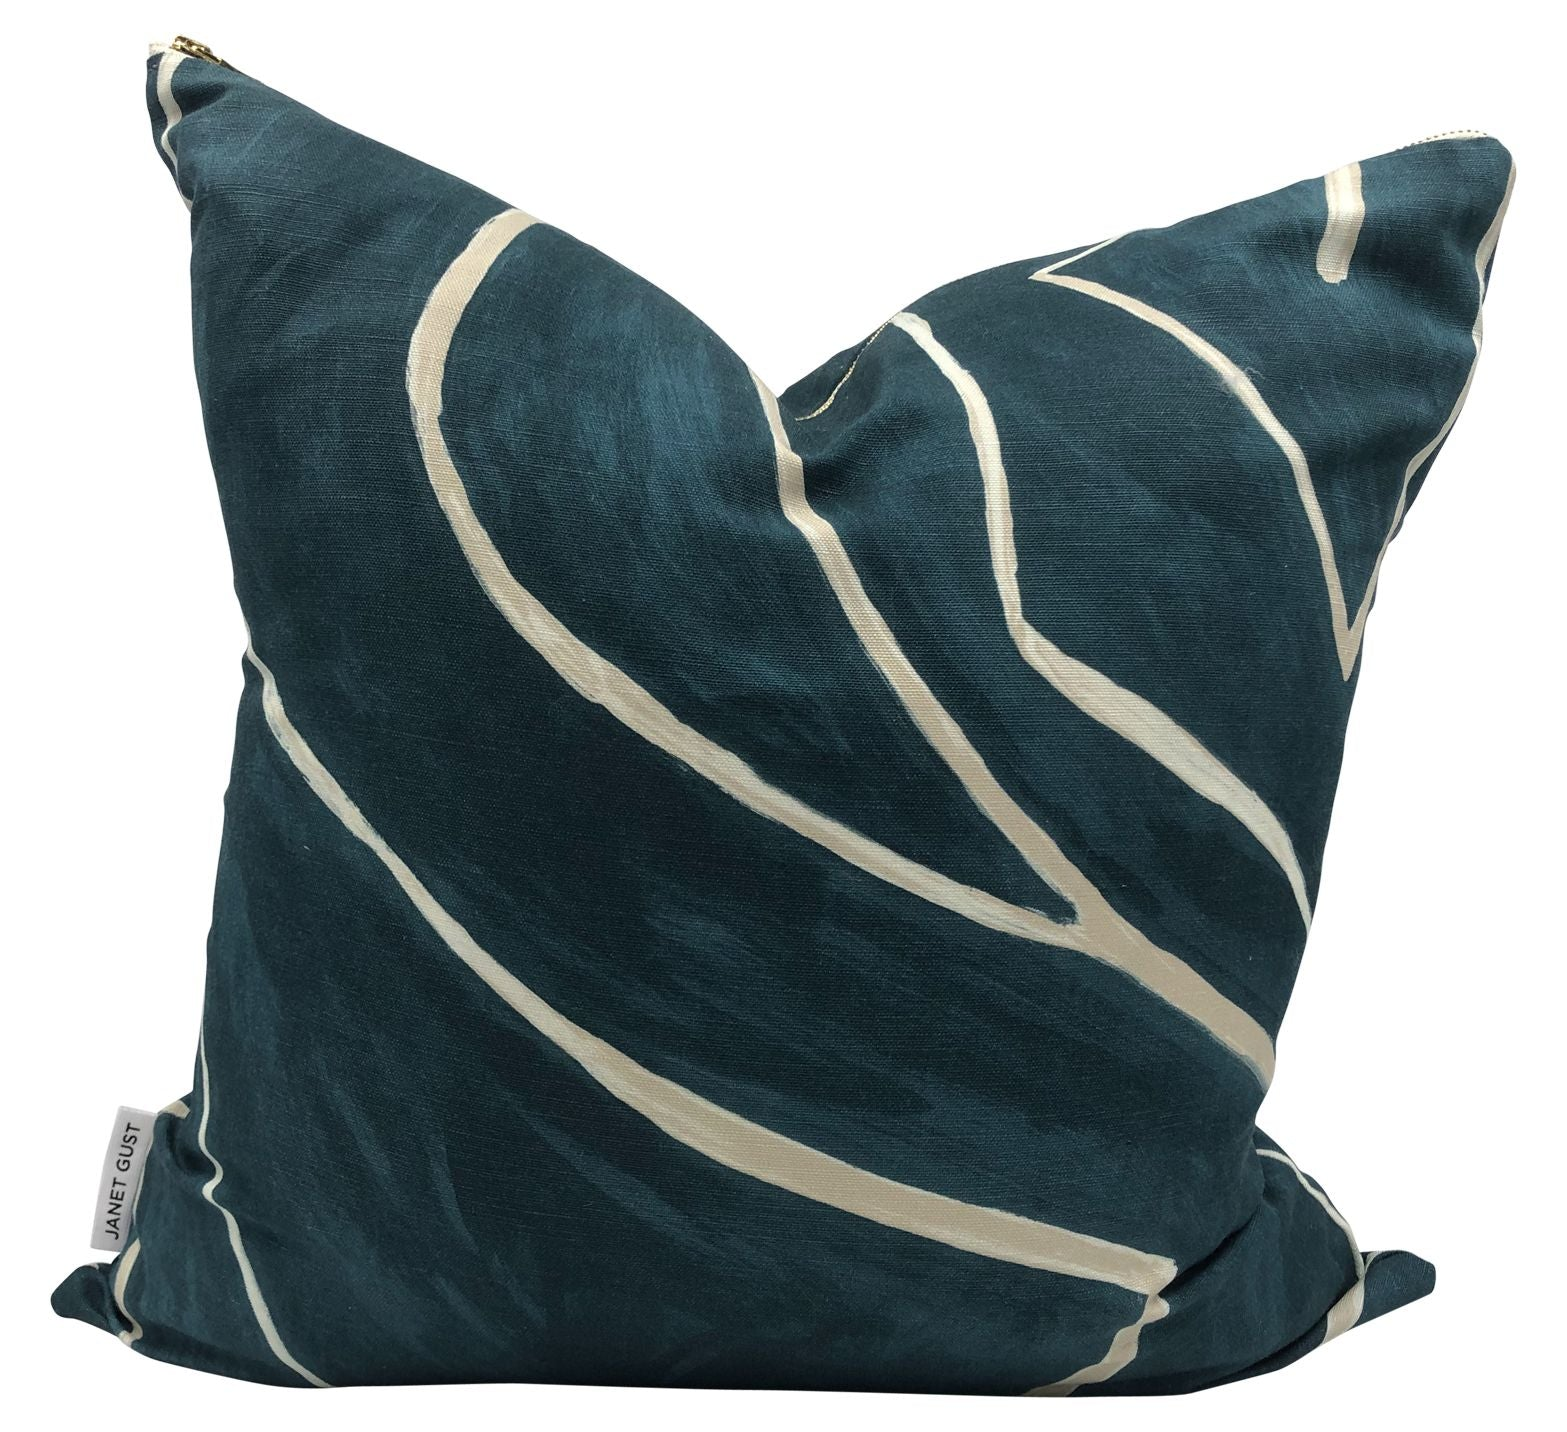 Teal Green Grafitto Pillow